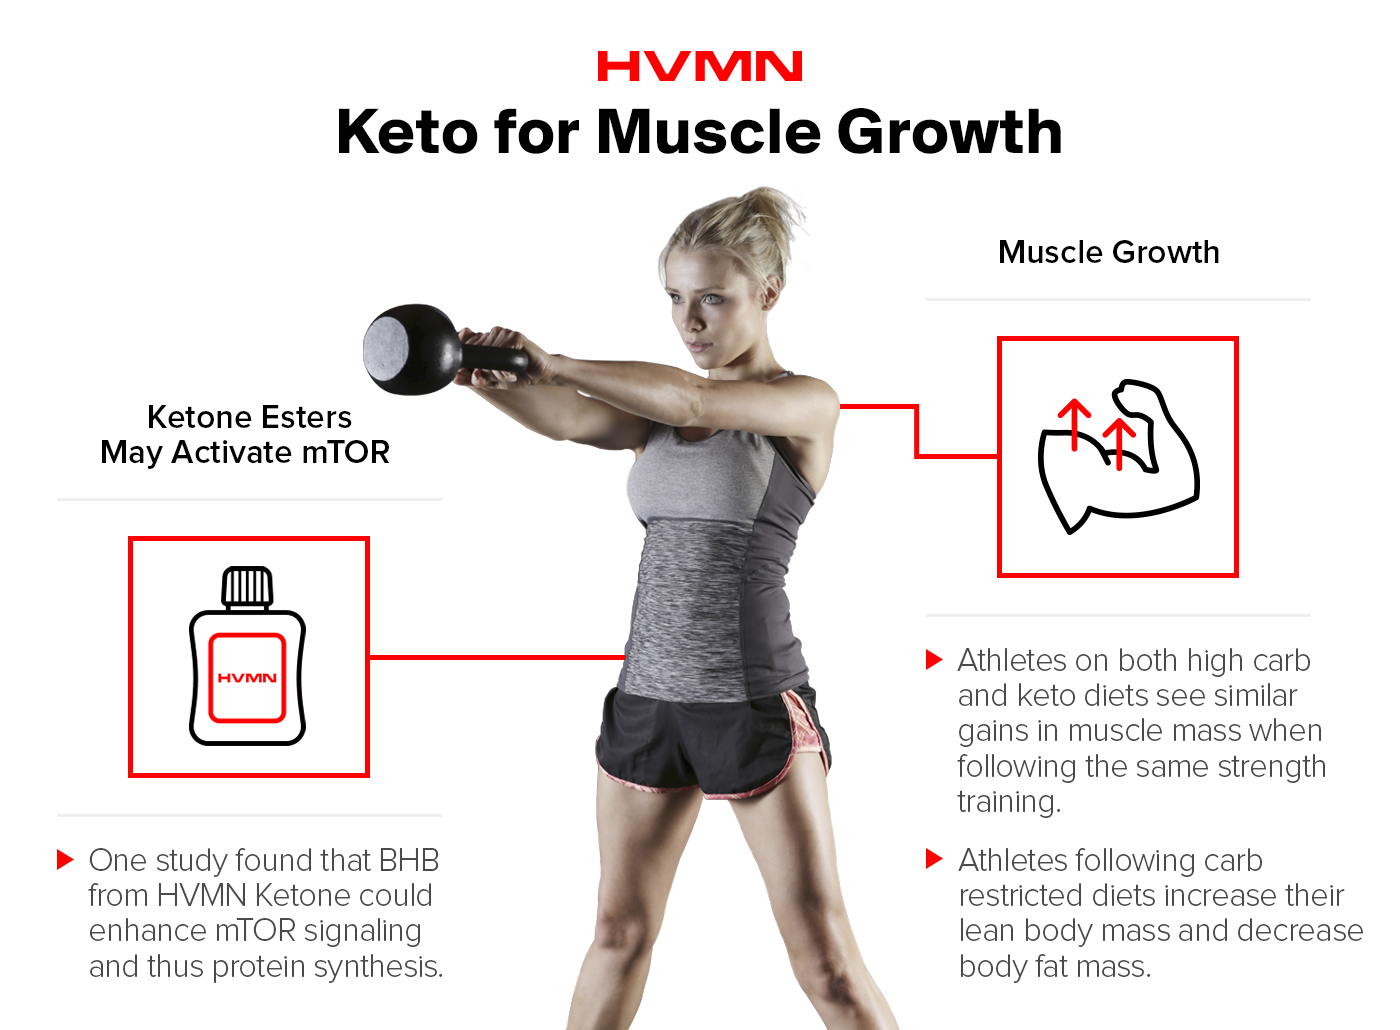 will the keto diet increase muscle